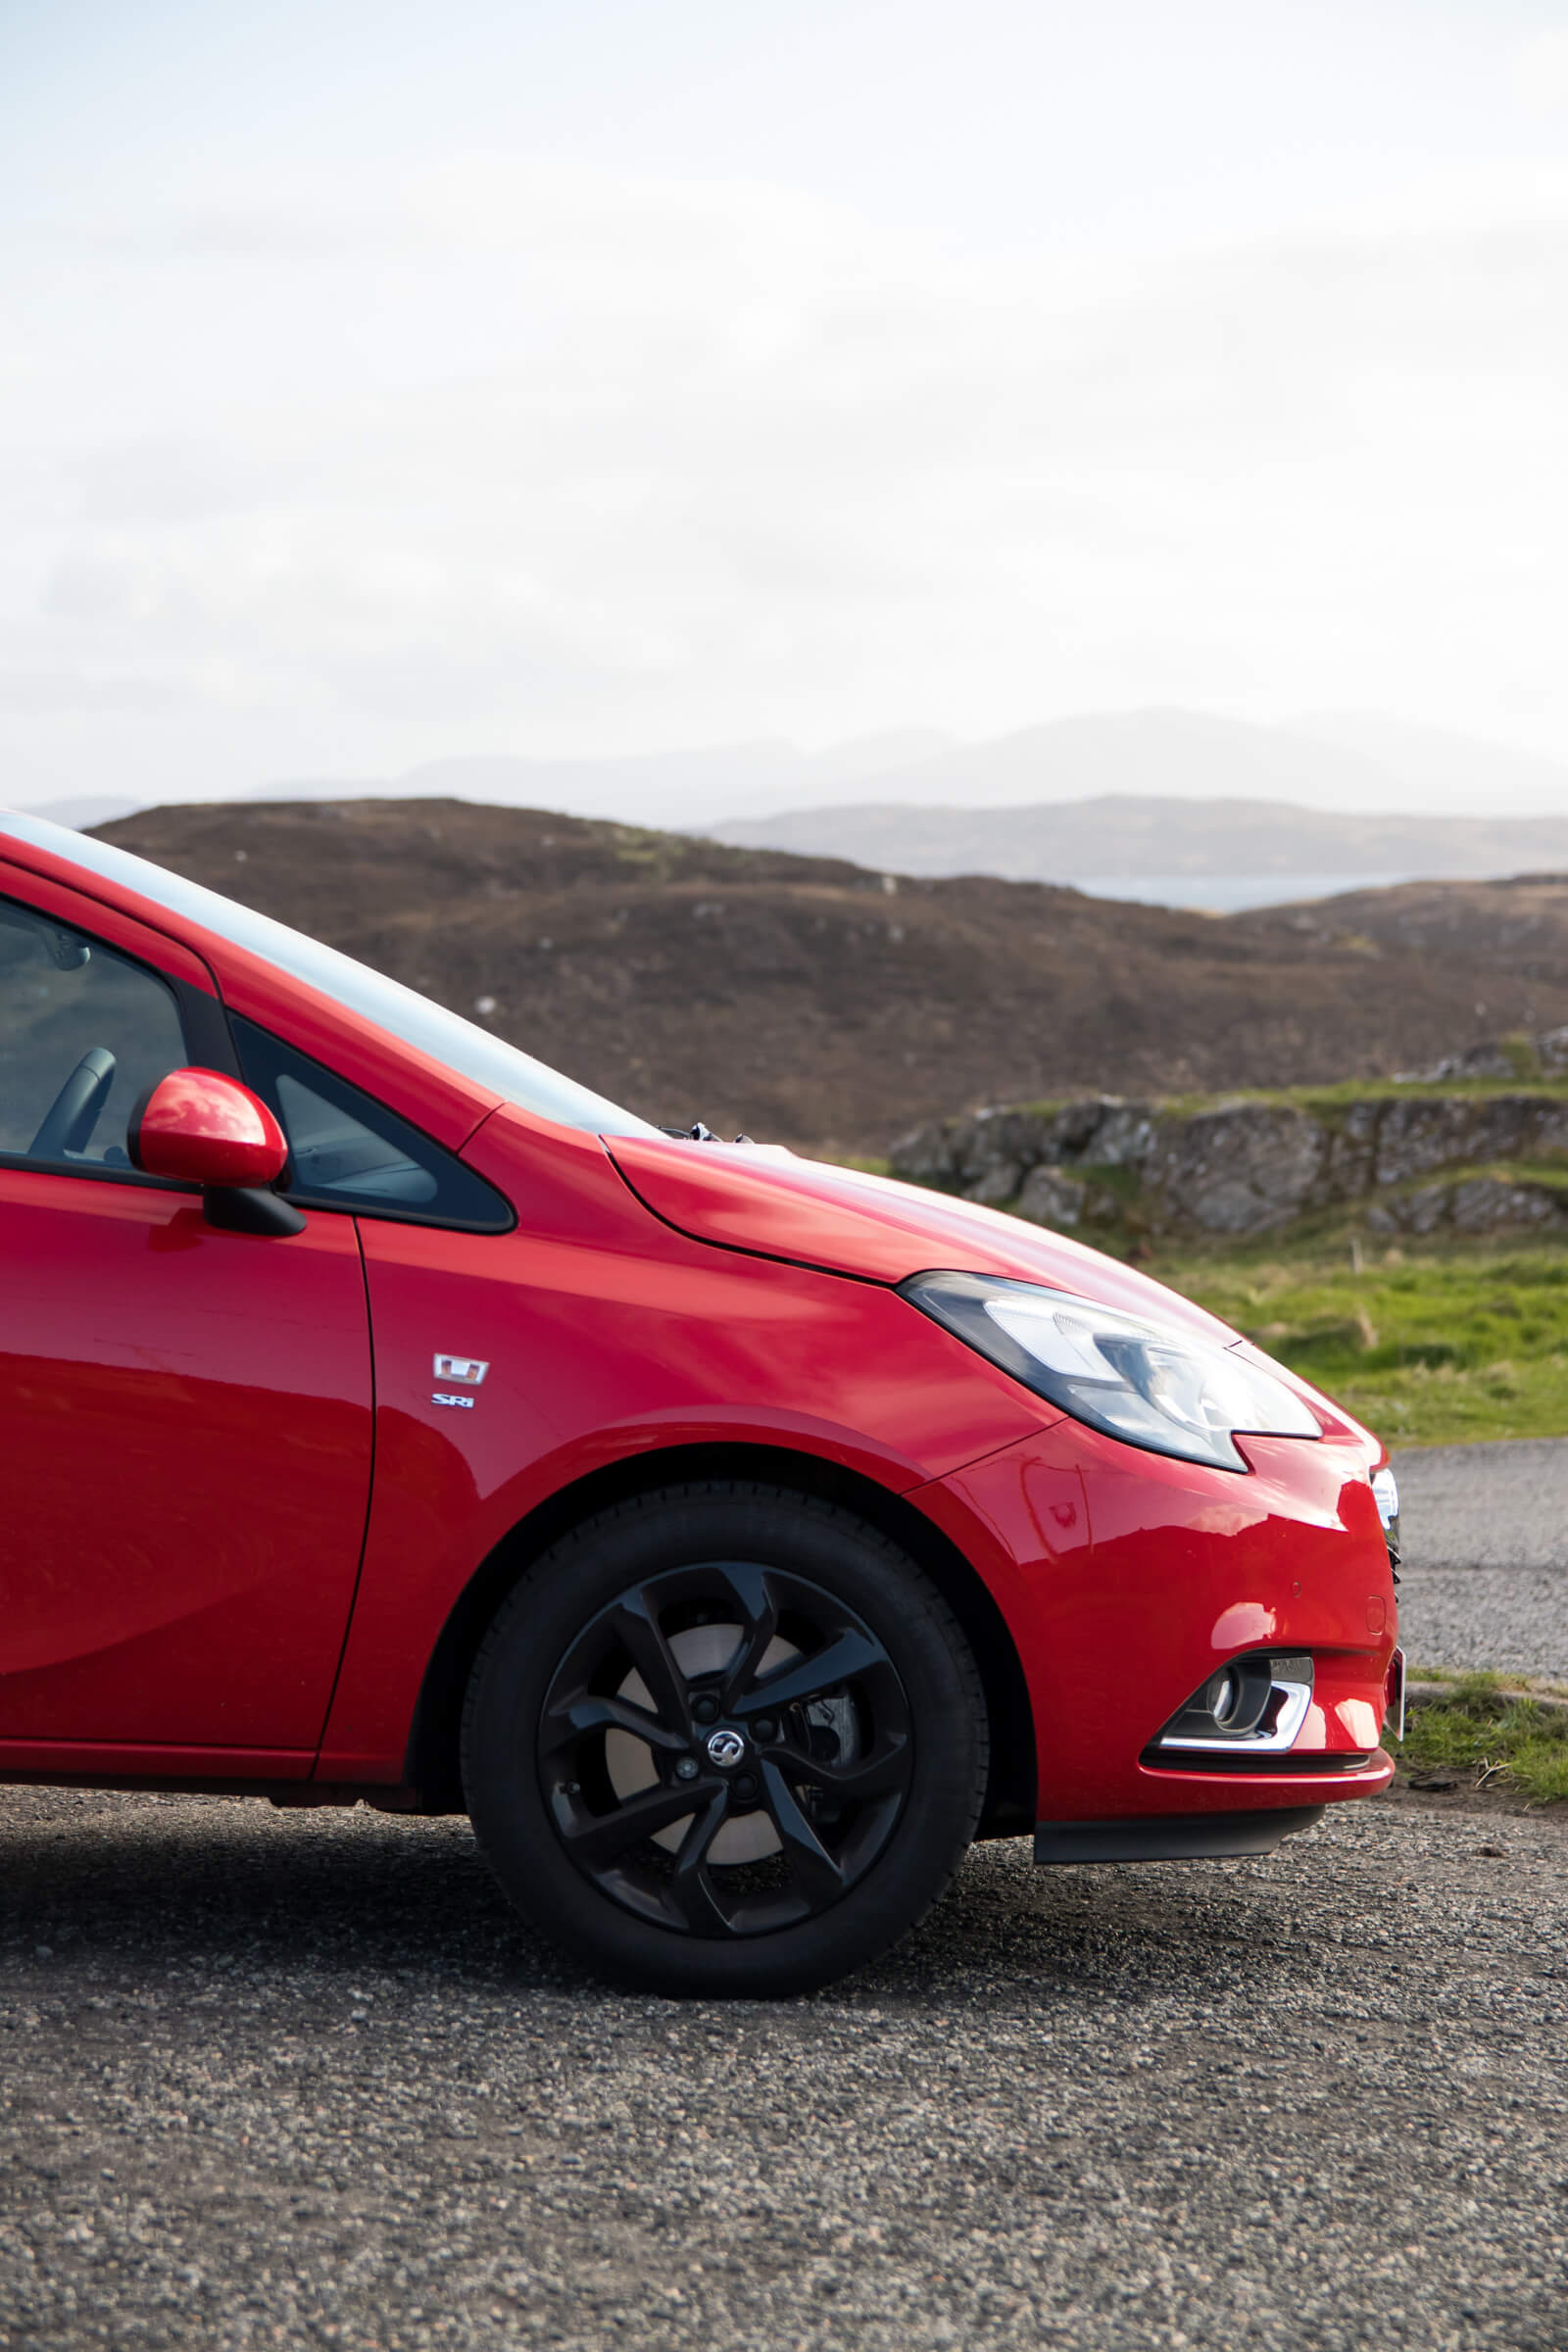 Corsa in front of the Isle of Lewis landscape